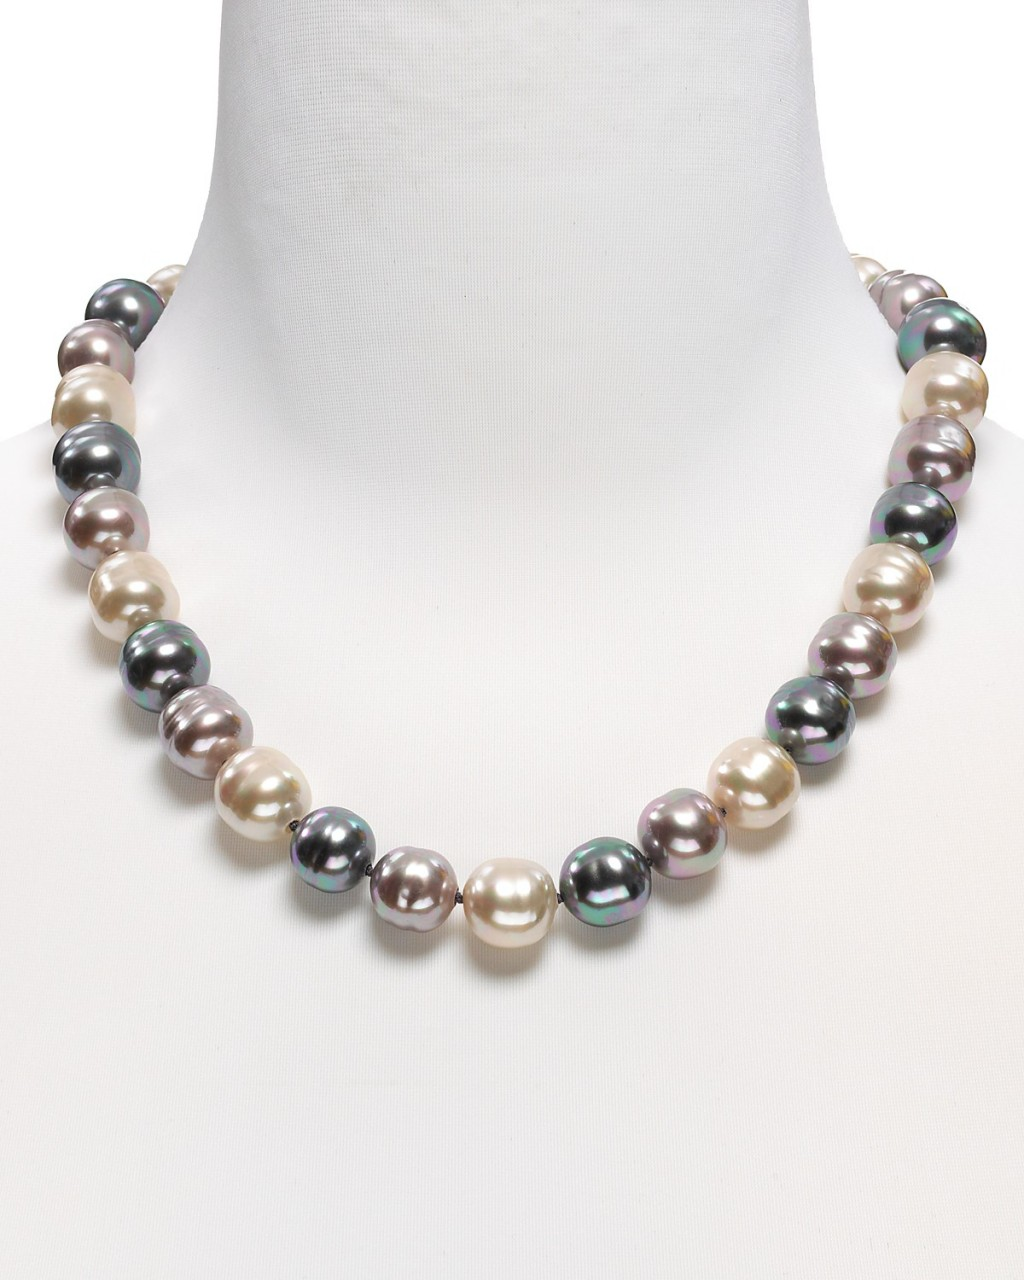 8 Lovely Majorica Baroque Pearl Necklace in Jewelry